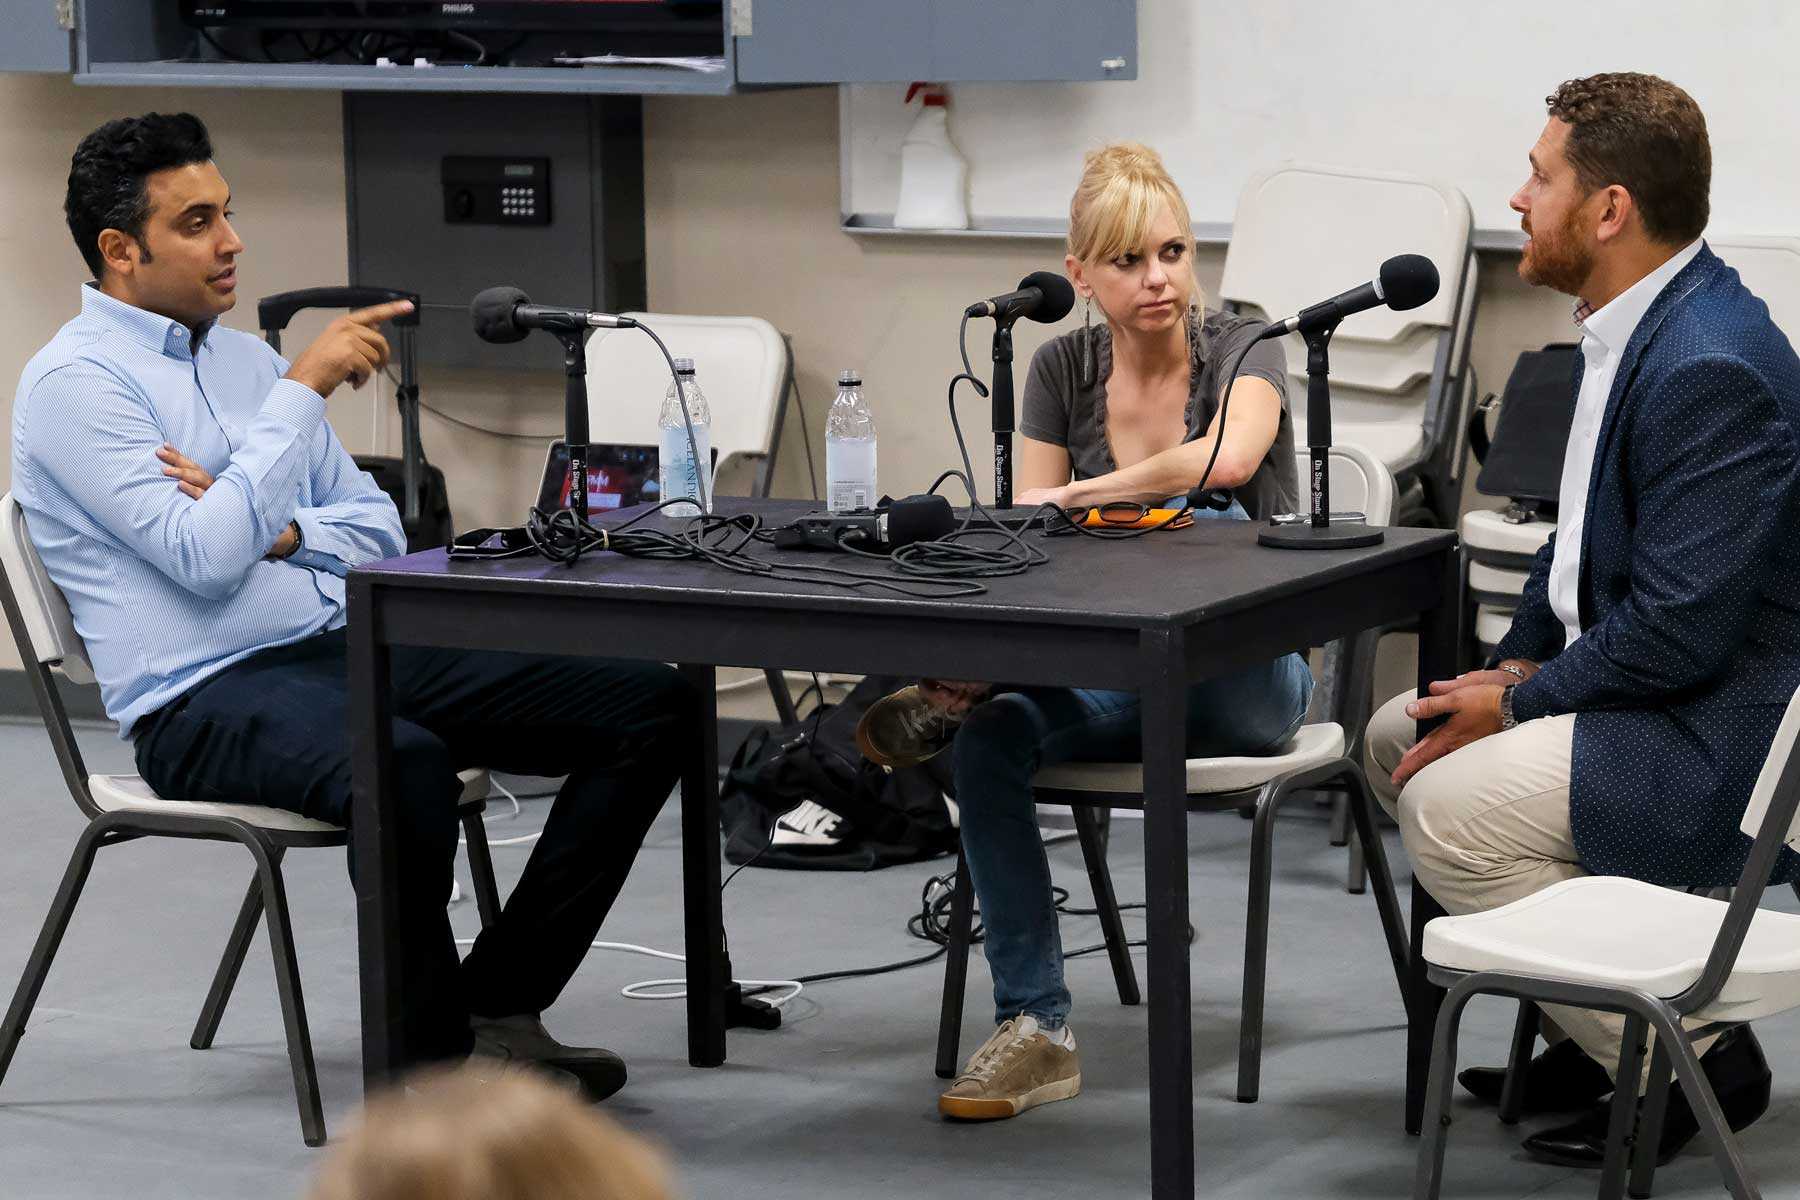 Actress Anna Faris Brings Her Podcast Skills To The Front